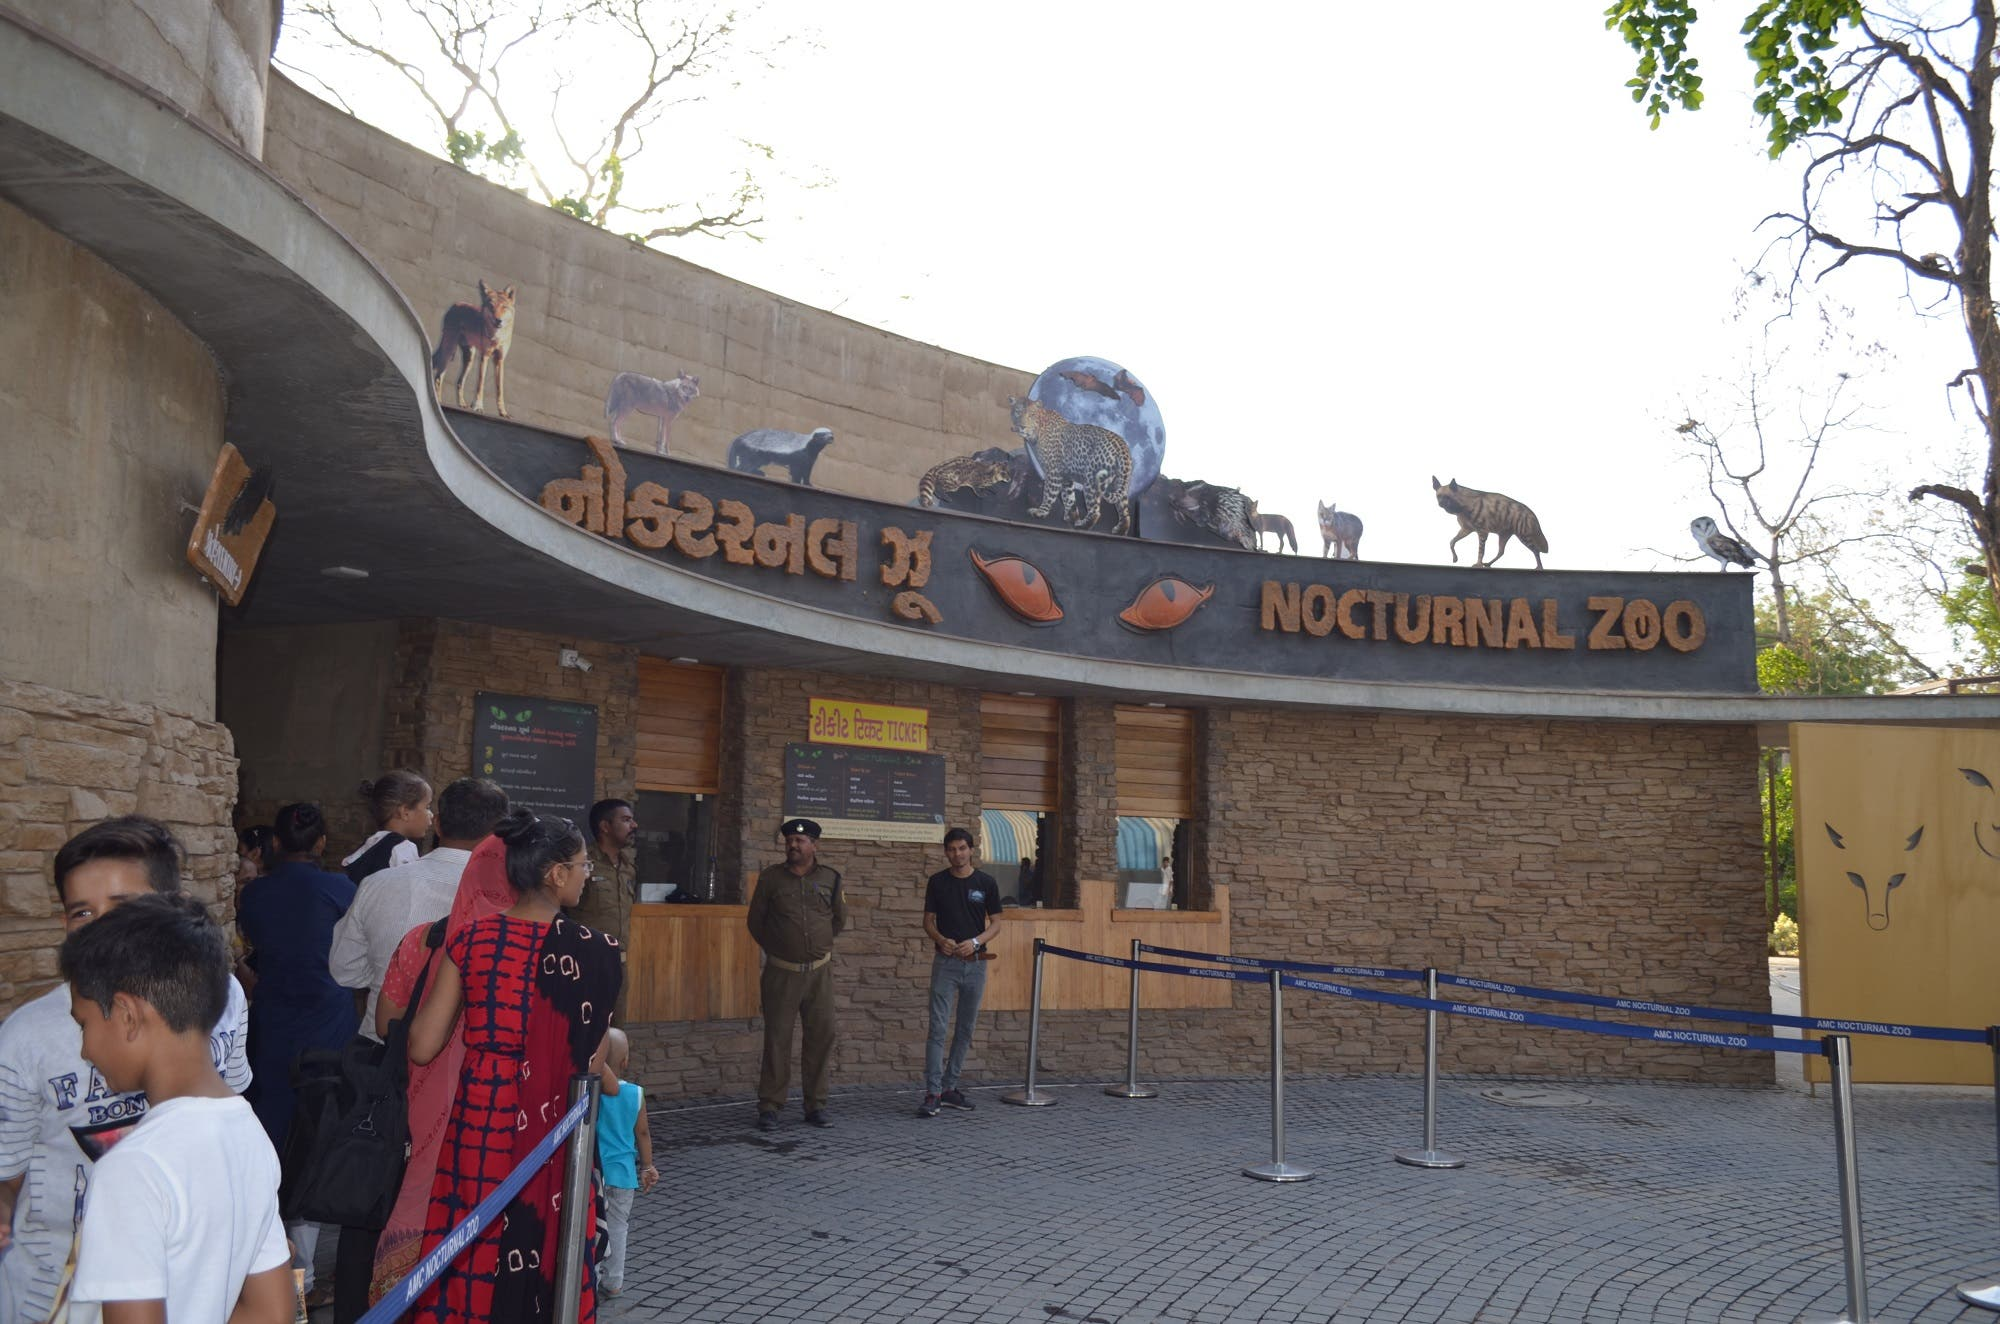 The newly-opened nocturnal zoo in Ahmedabad is a big draw. (Supplied)